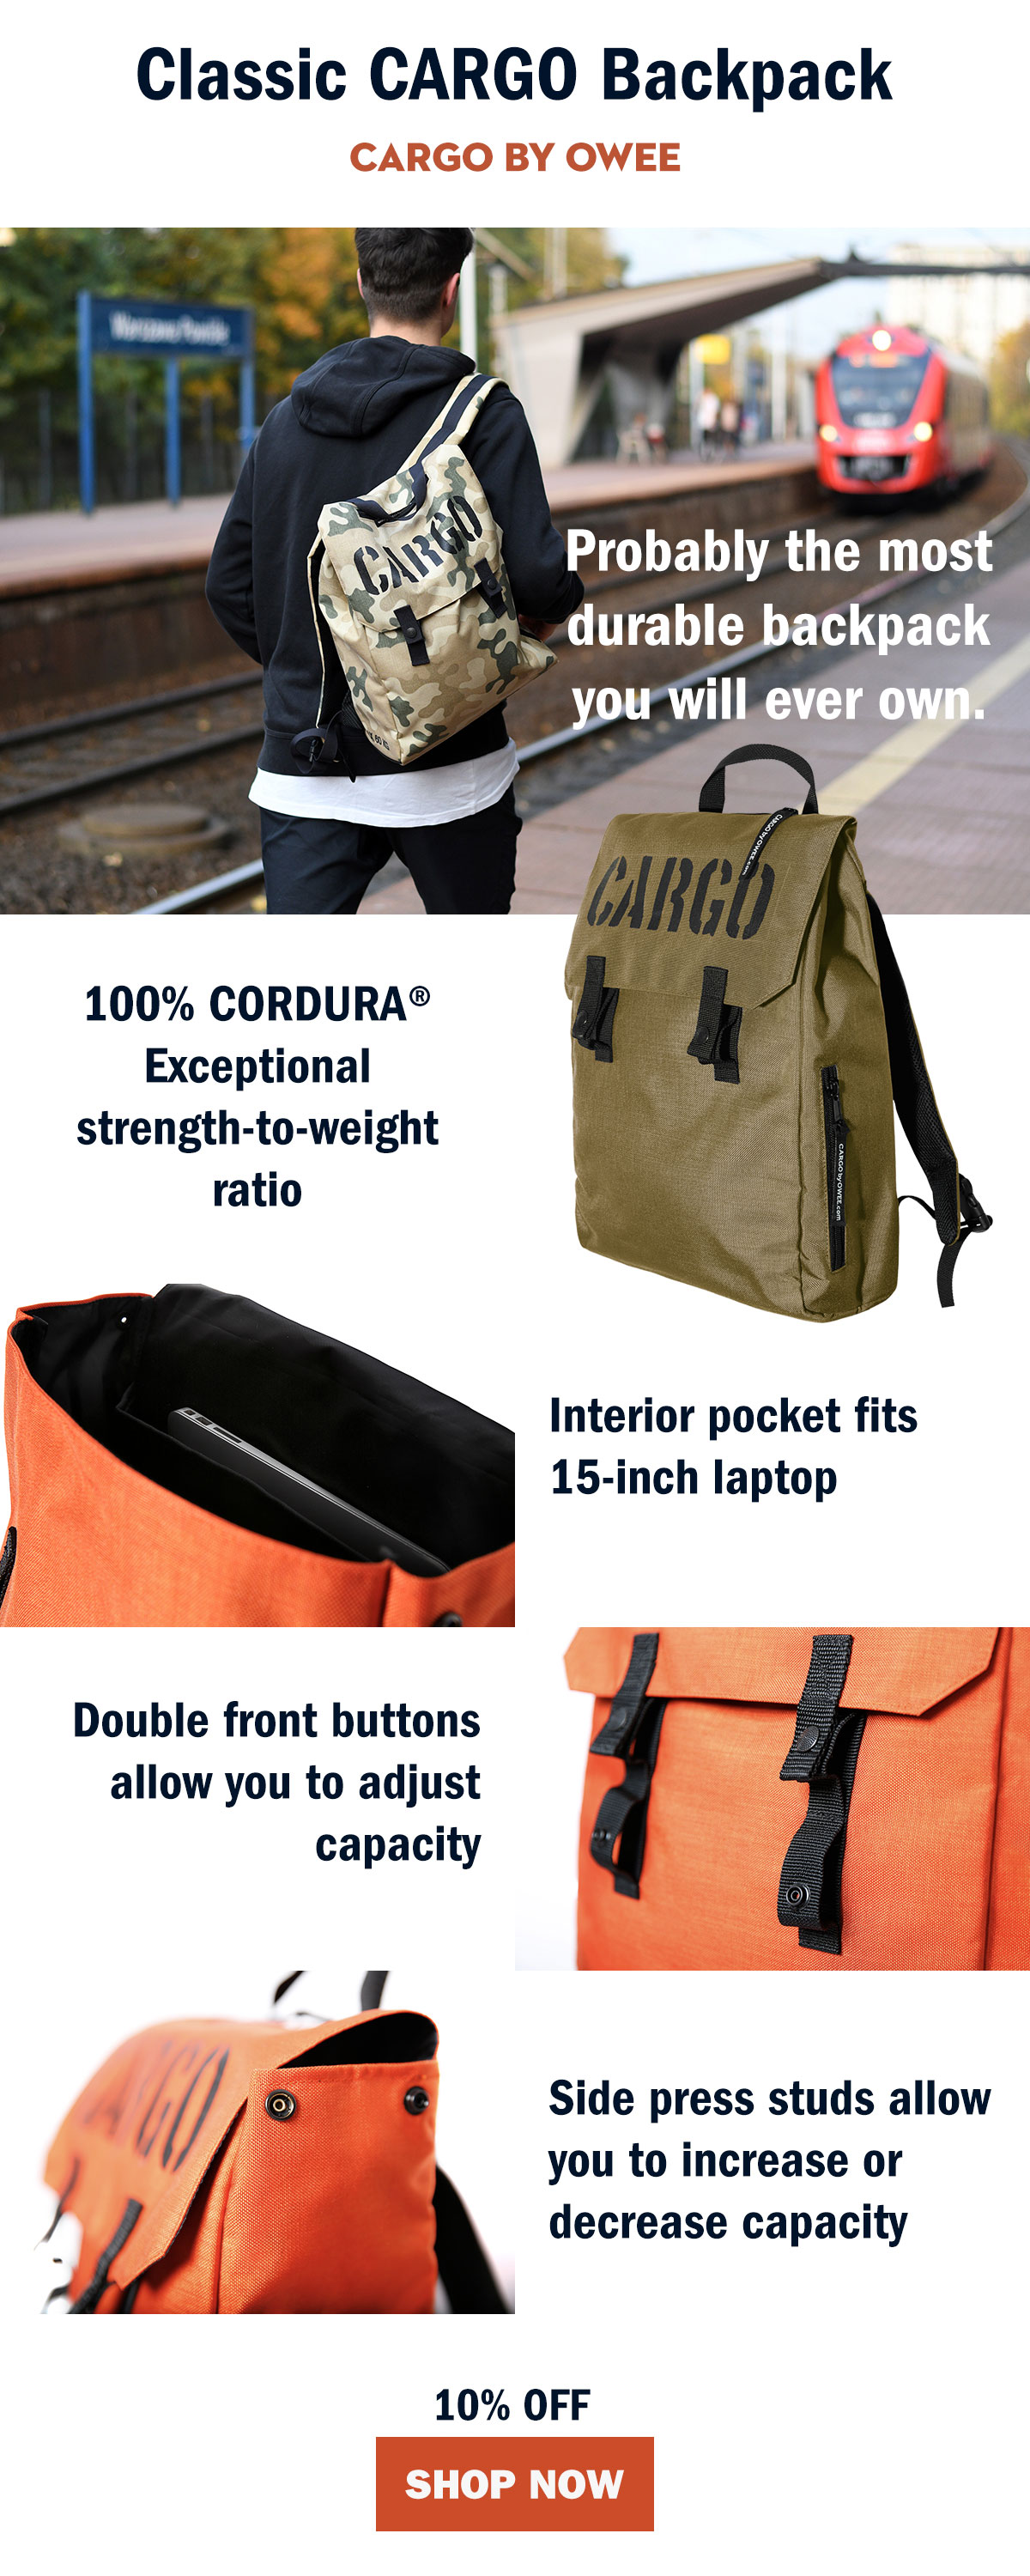 Classic Cargo Backpack